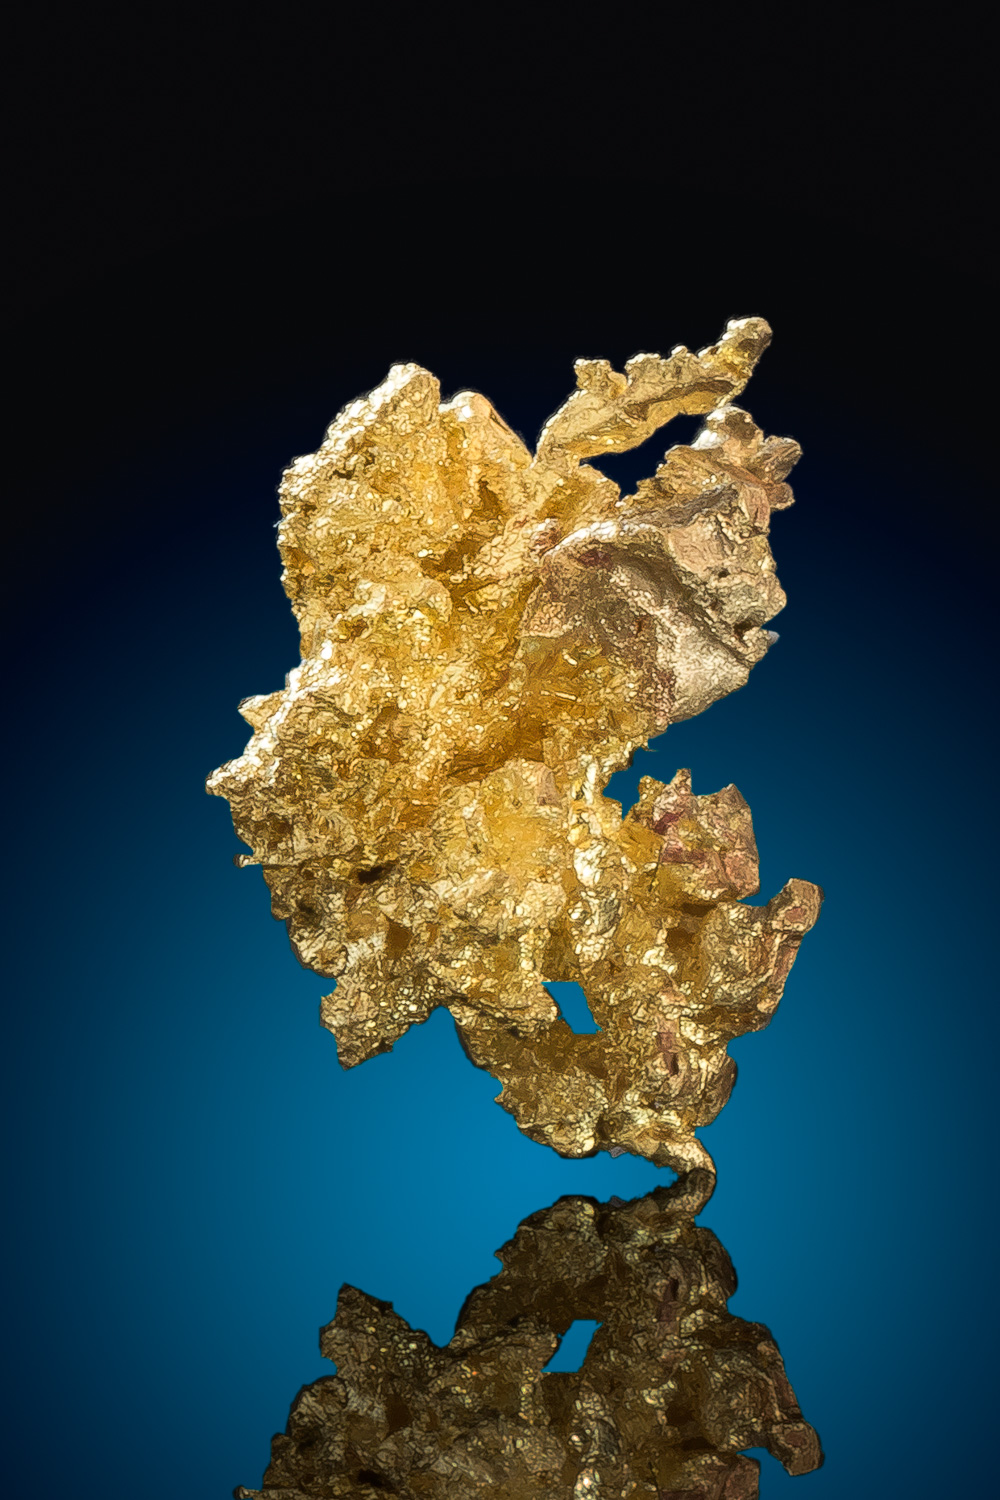 Chunky Crystalline Gold Nugget Specimen - Eagles Nest Gold Mine